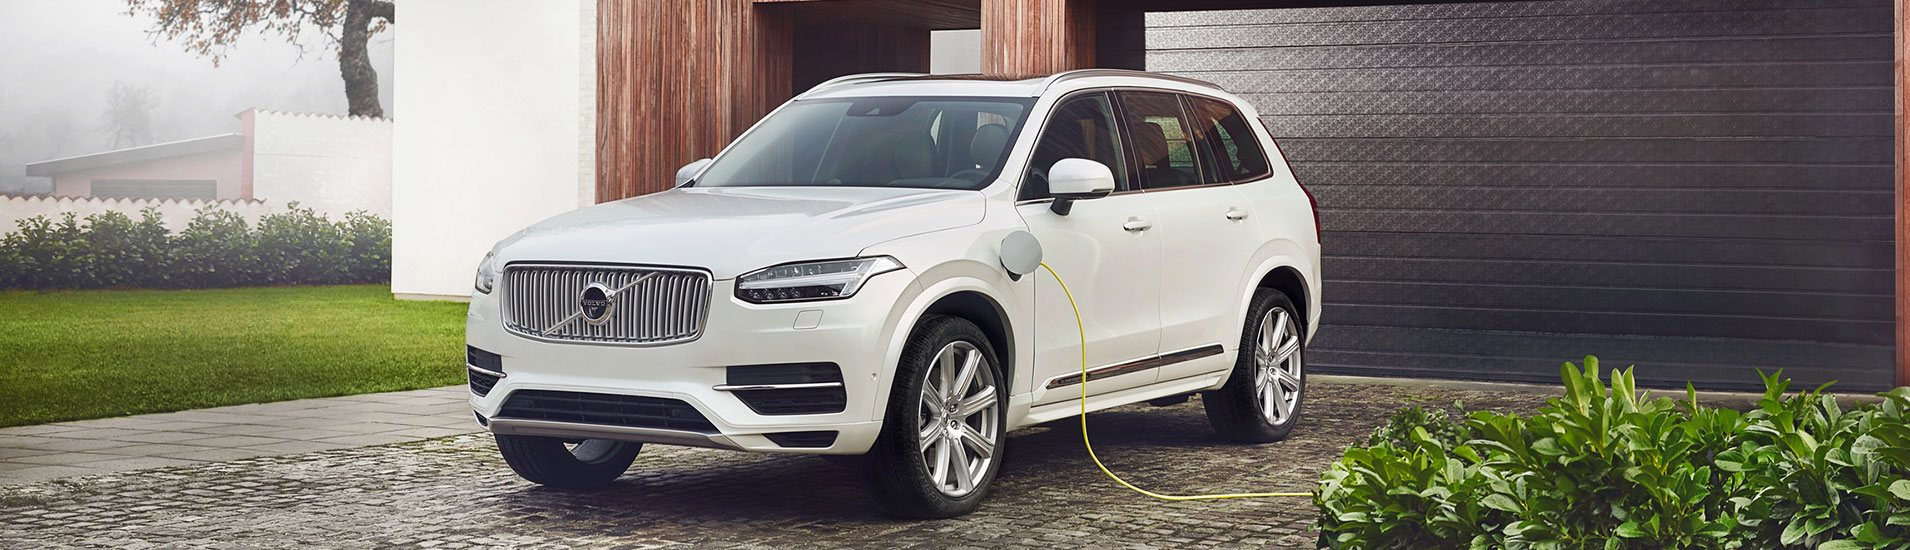 header-twin-engine-xc90-white.jpg